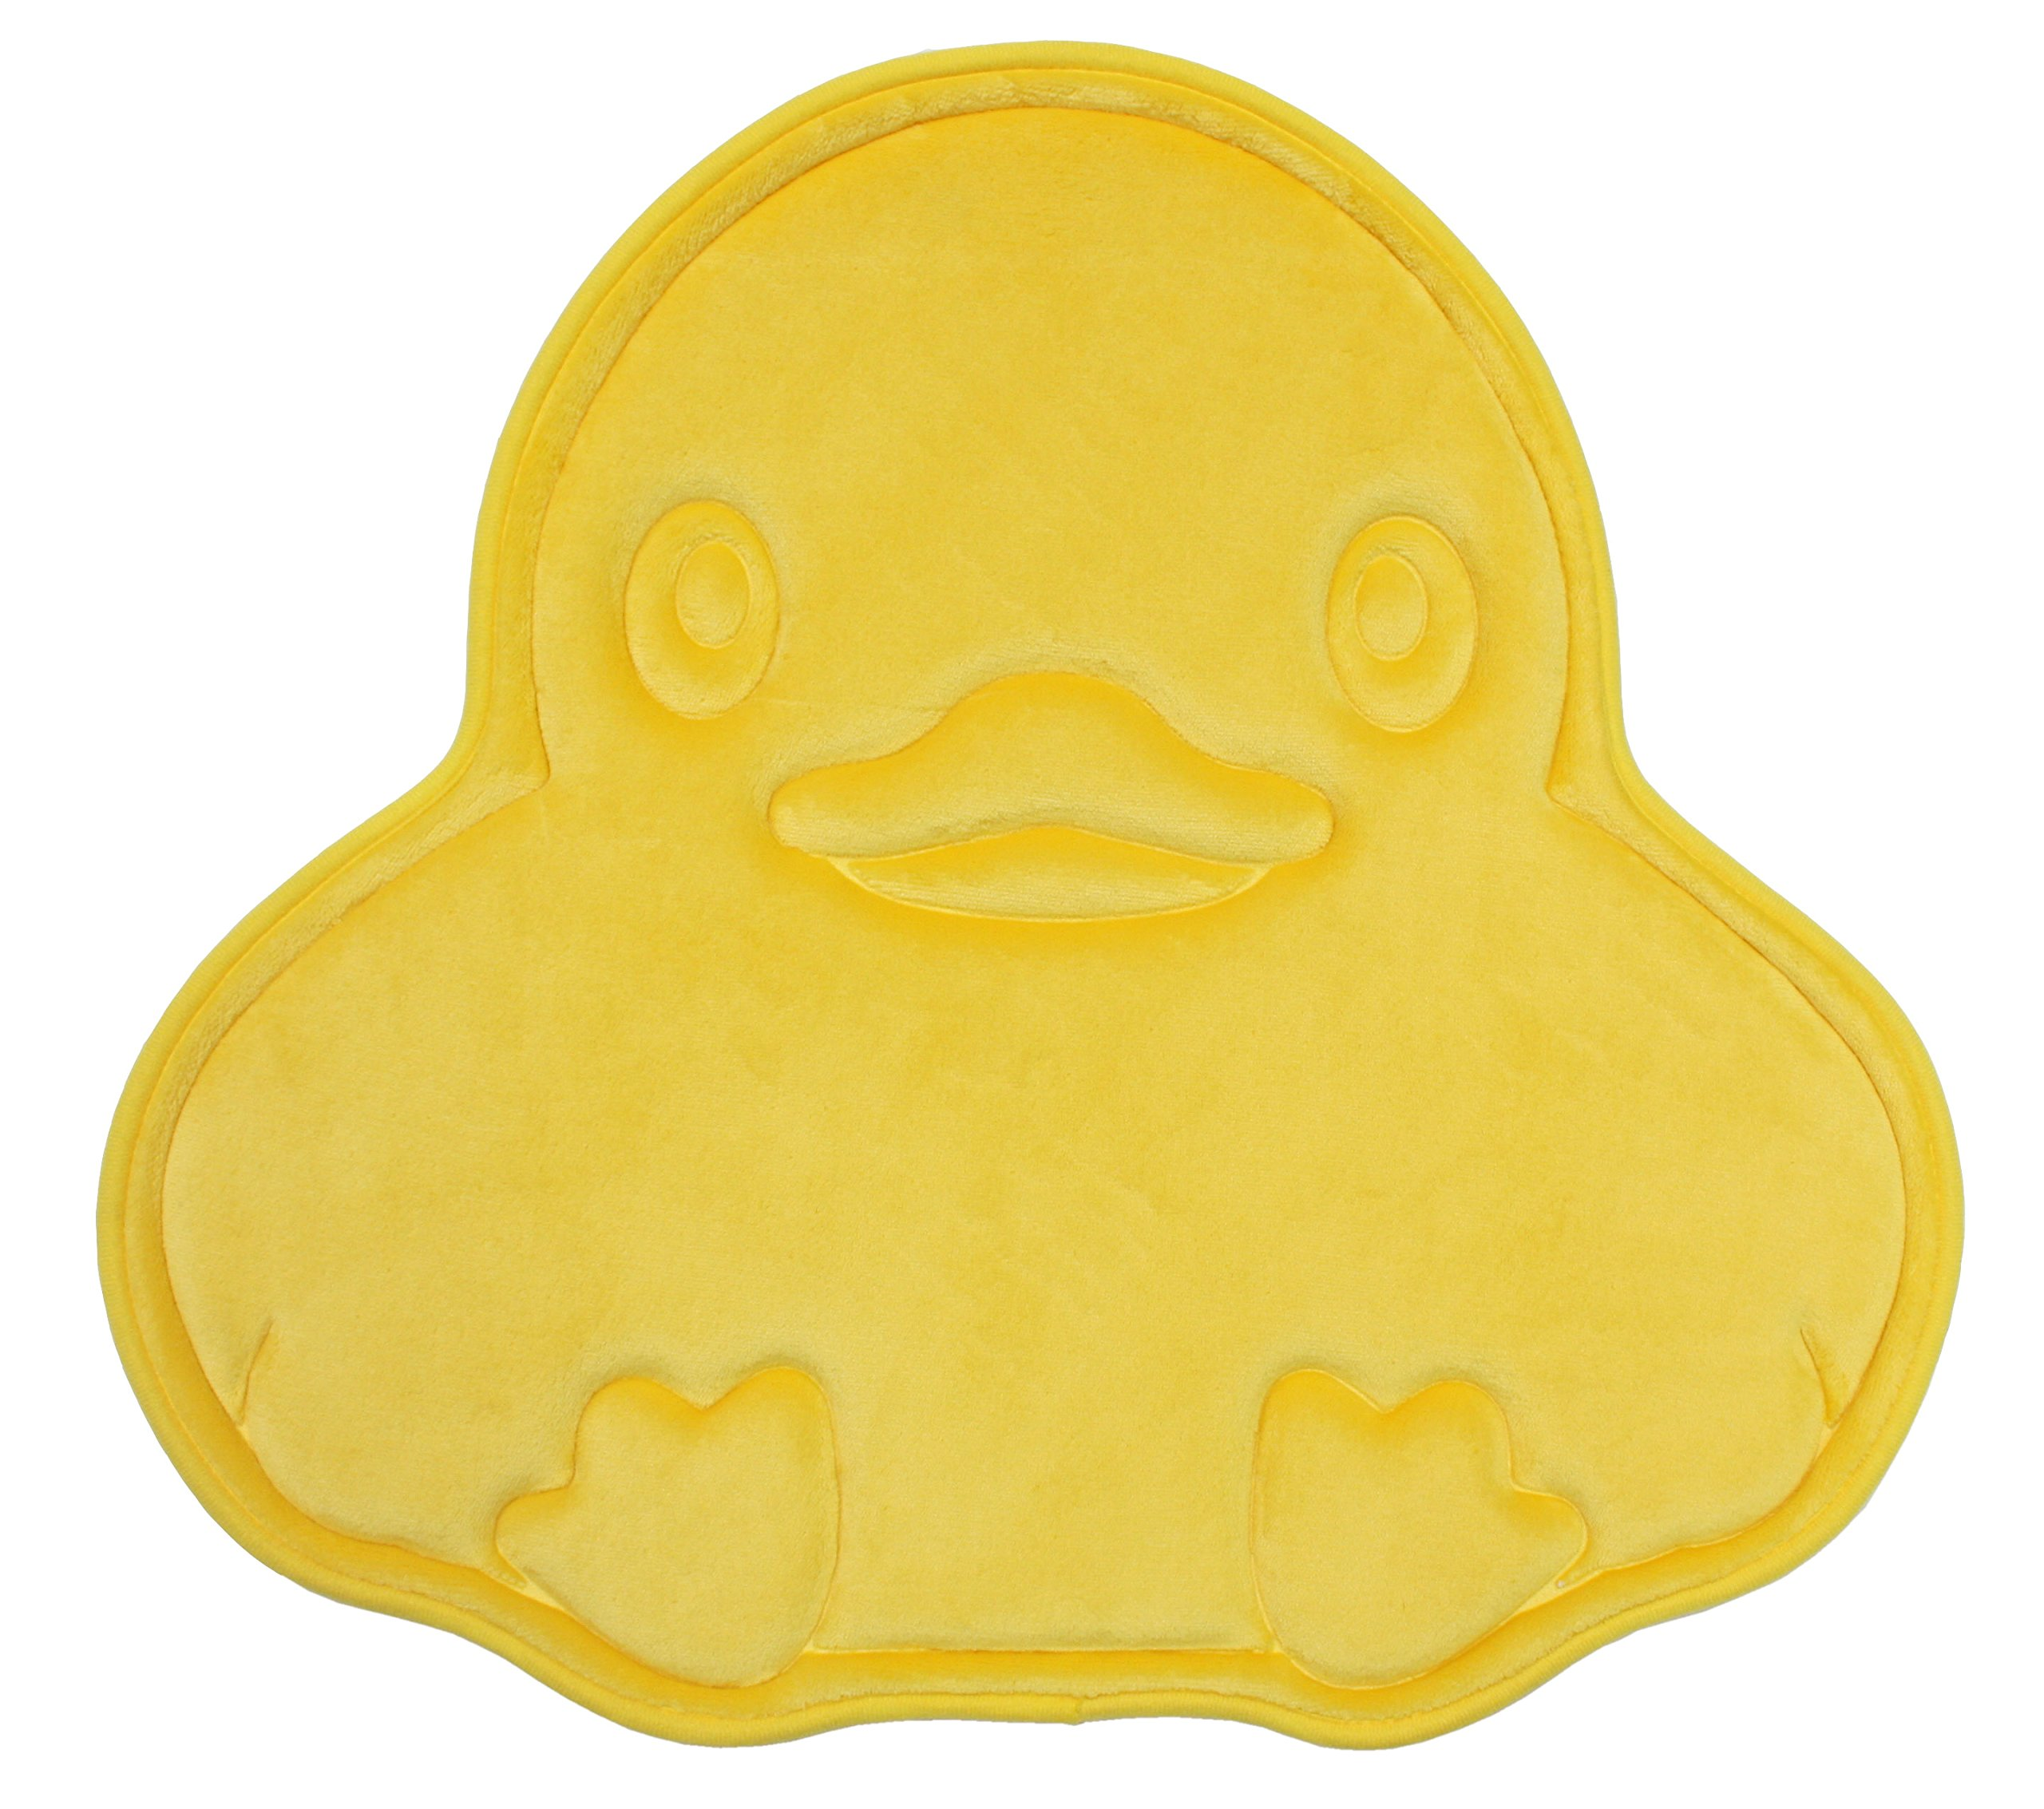 Memory Foam Kid's Bath Mat Non Slip Ultra Soft and Absorbent 22x24'', Machine Washable Fast Dry for Shower, Vanity, Bath Tub, Sink, and Toilet-Yellow Duck